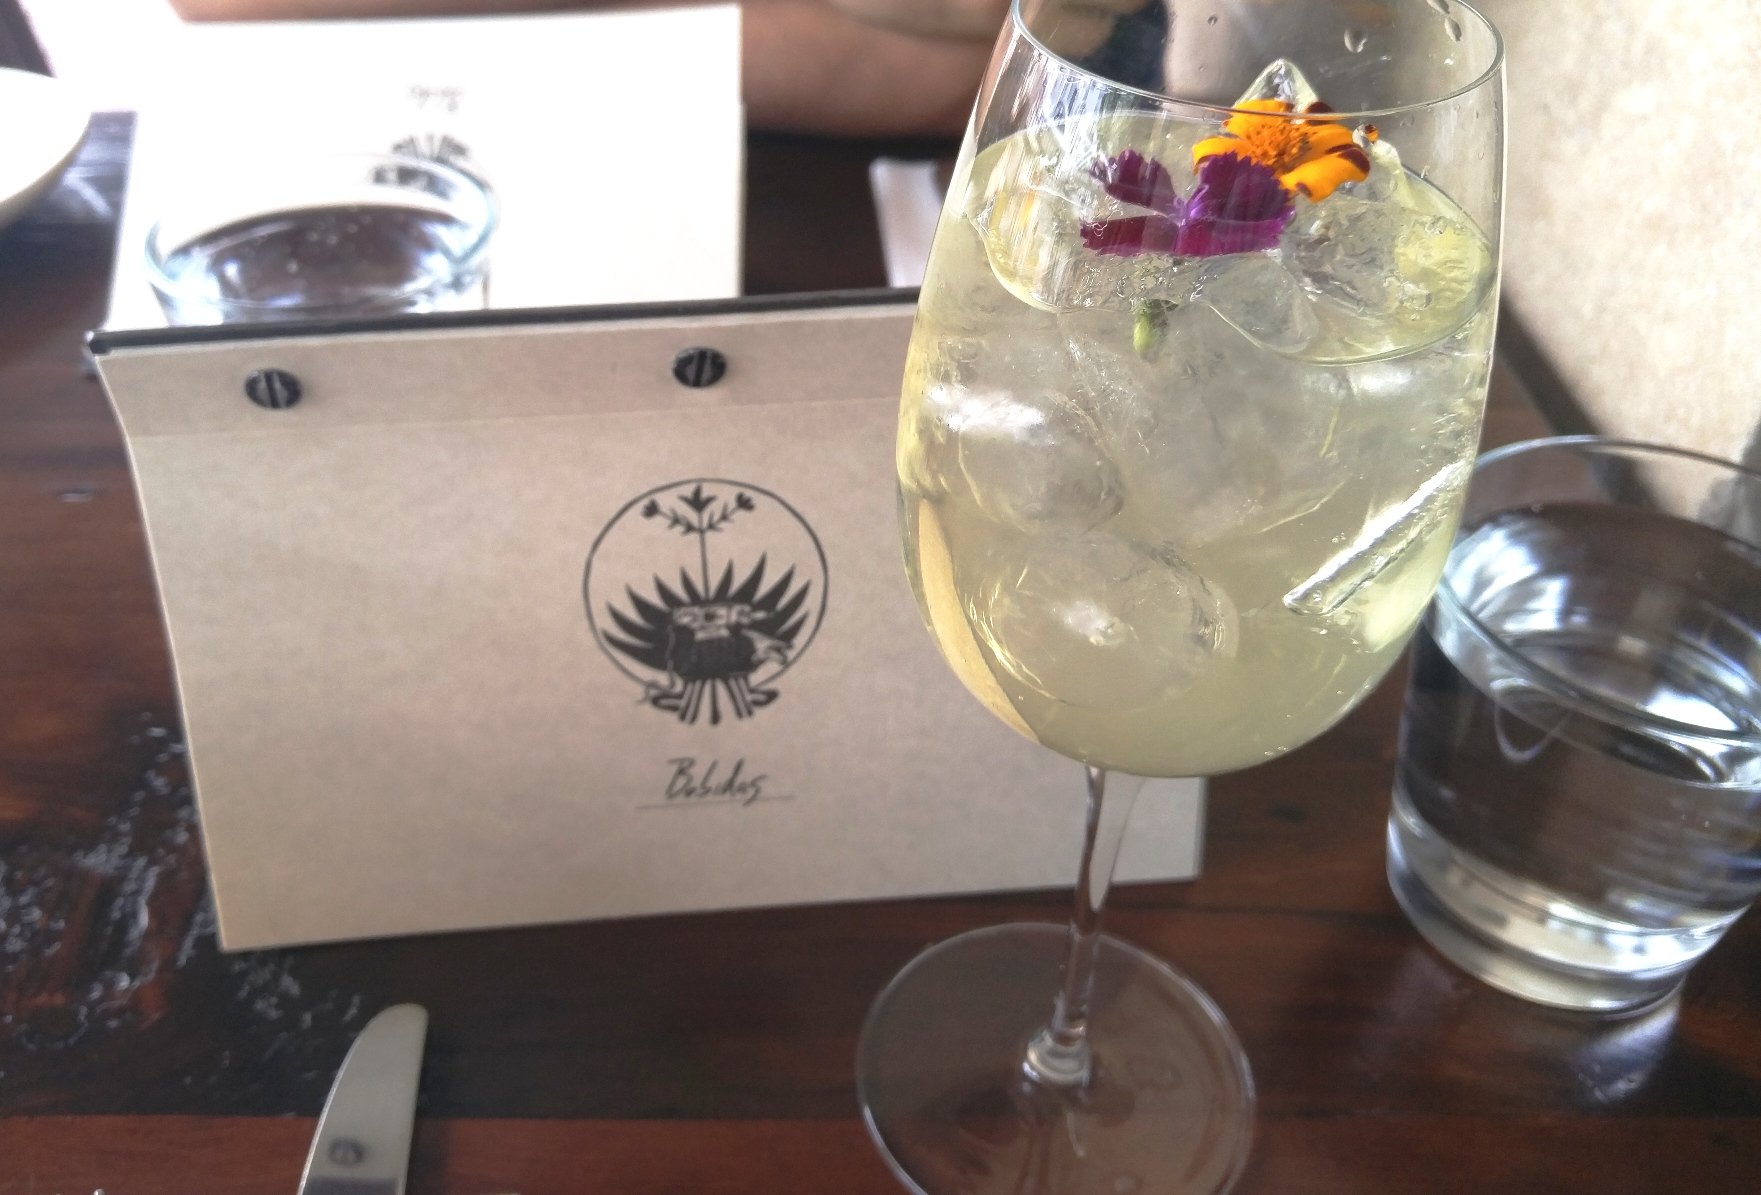 Espita Mezcaleria Celebrates Sense of Moment with New Spring Cocktails, Mezcal Flights & Beer Collaborations